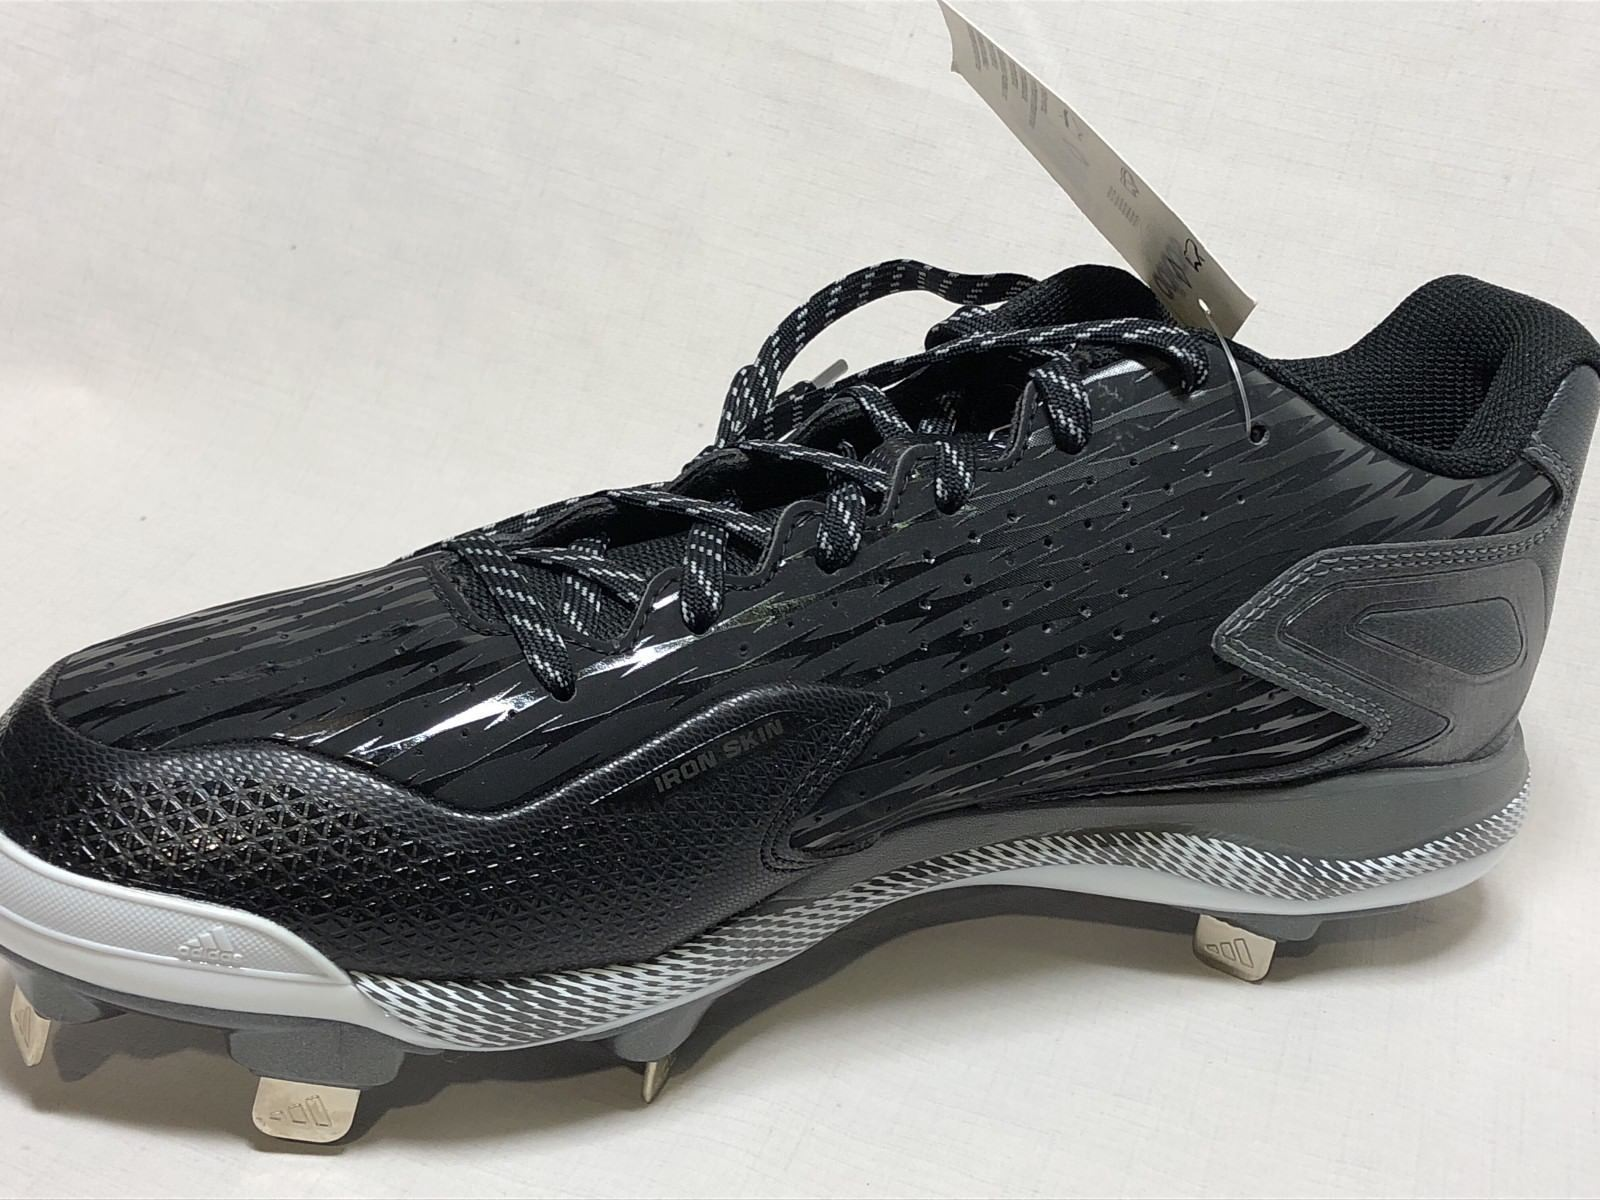 cheap for discount 52ab6 7e1fe ... Adidas S84762 Mens PowerAlley 3 Metal Baseball Cleats Size US11 -Black  ...